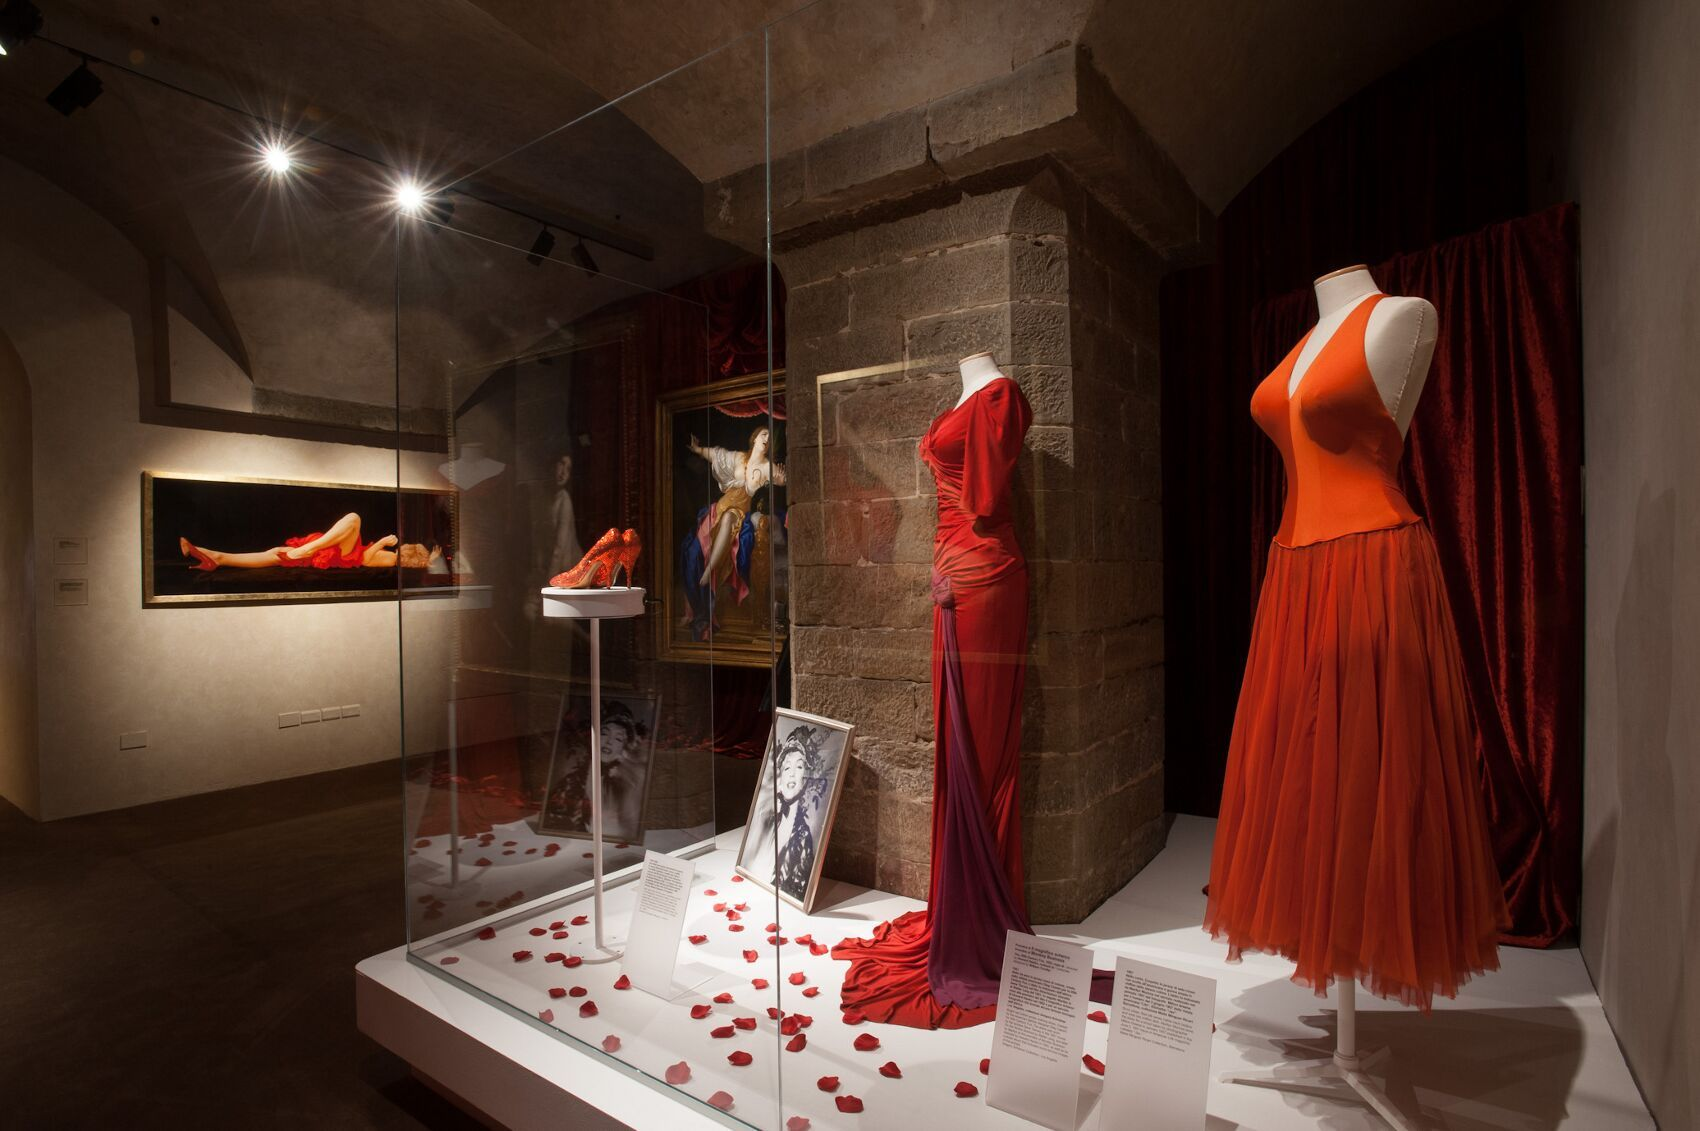 ... her red and purple velvet evening gown that she wore to the premier of